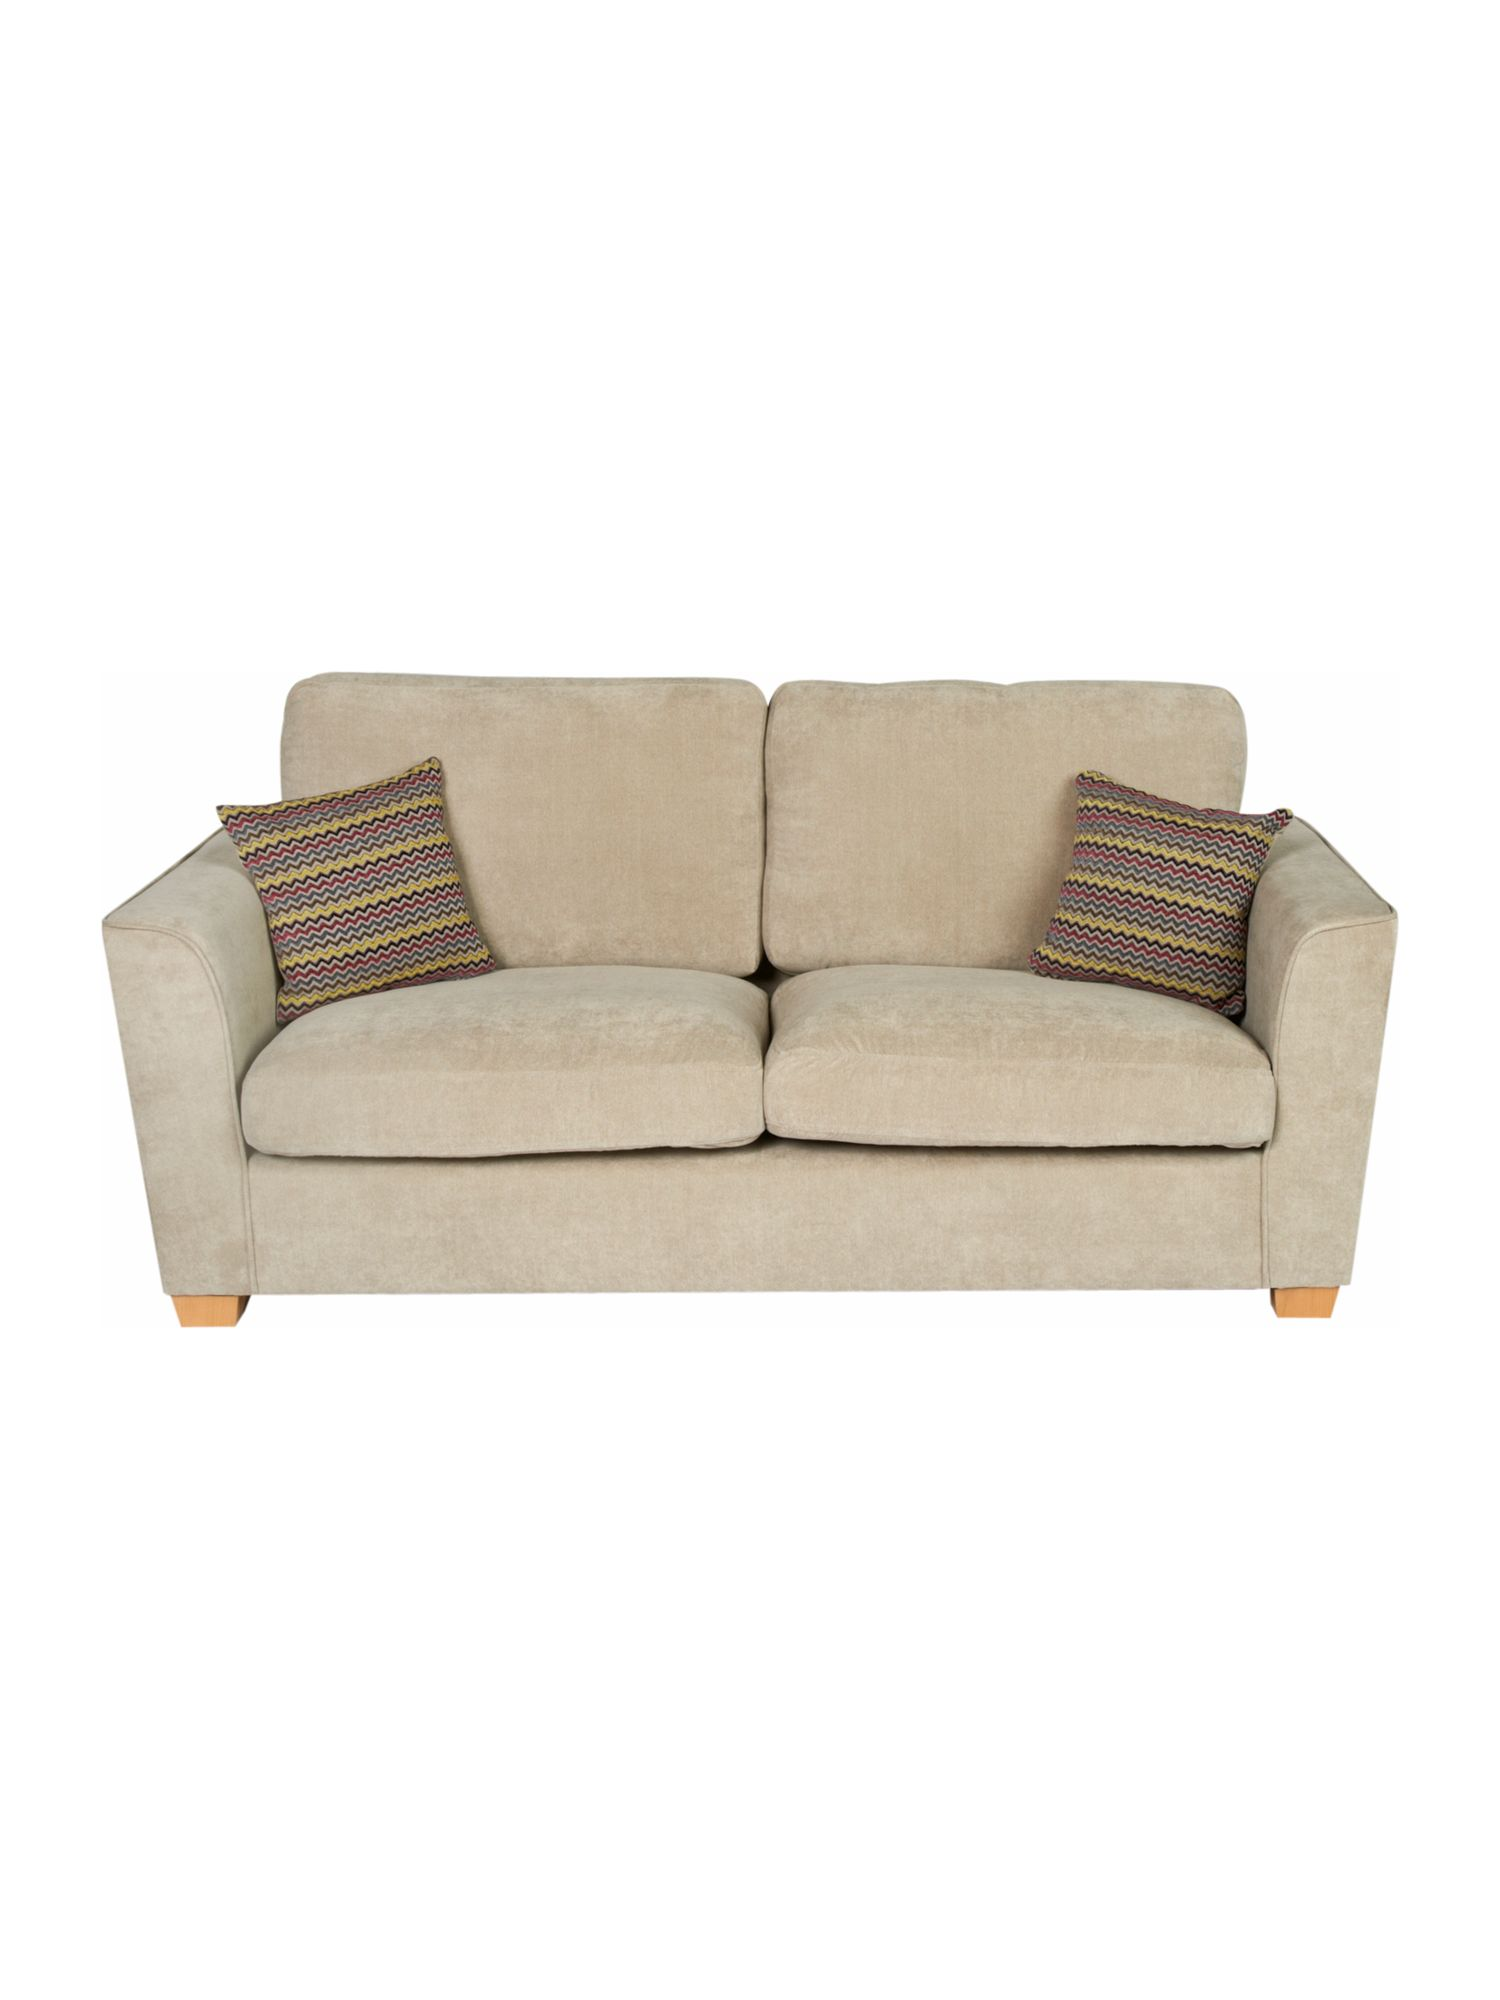 Oxford grey sofa range